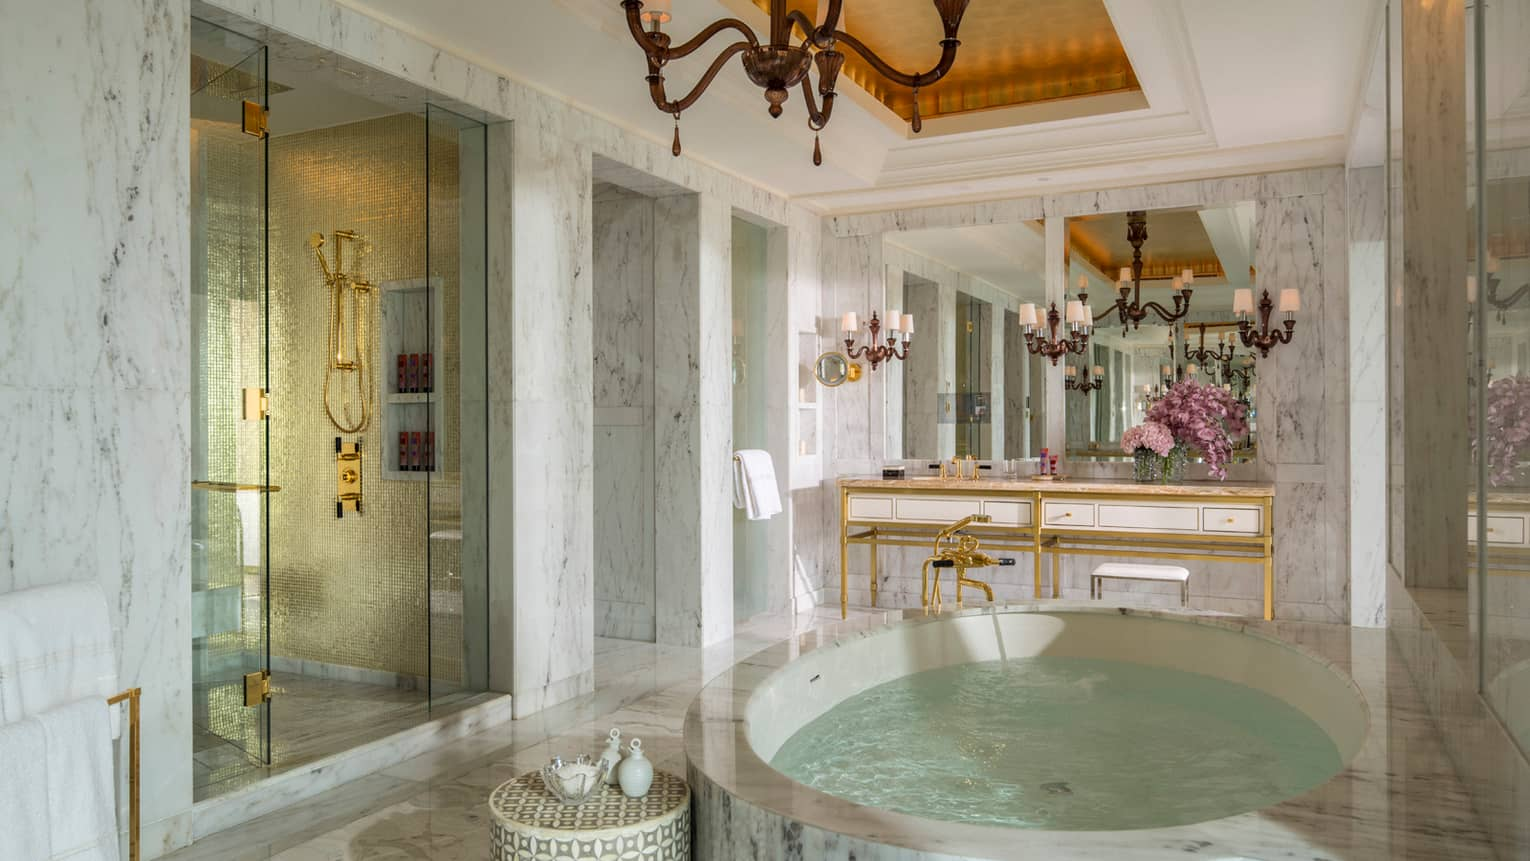 Royal Suite white marble master bathroom with circular spa tub, stand-up shower